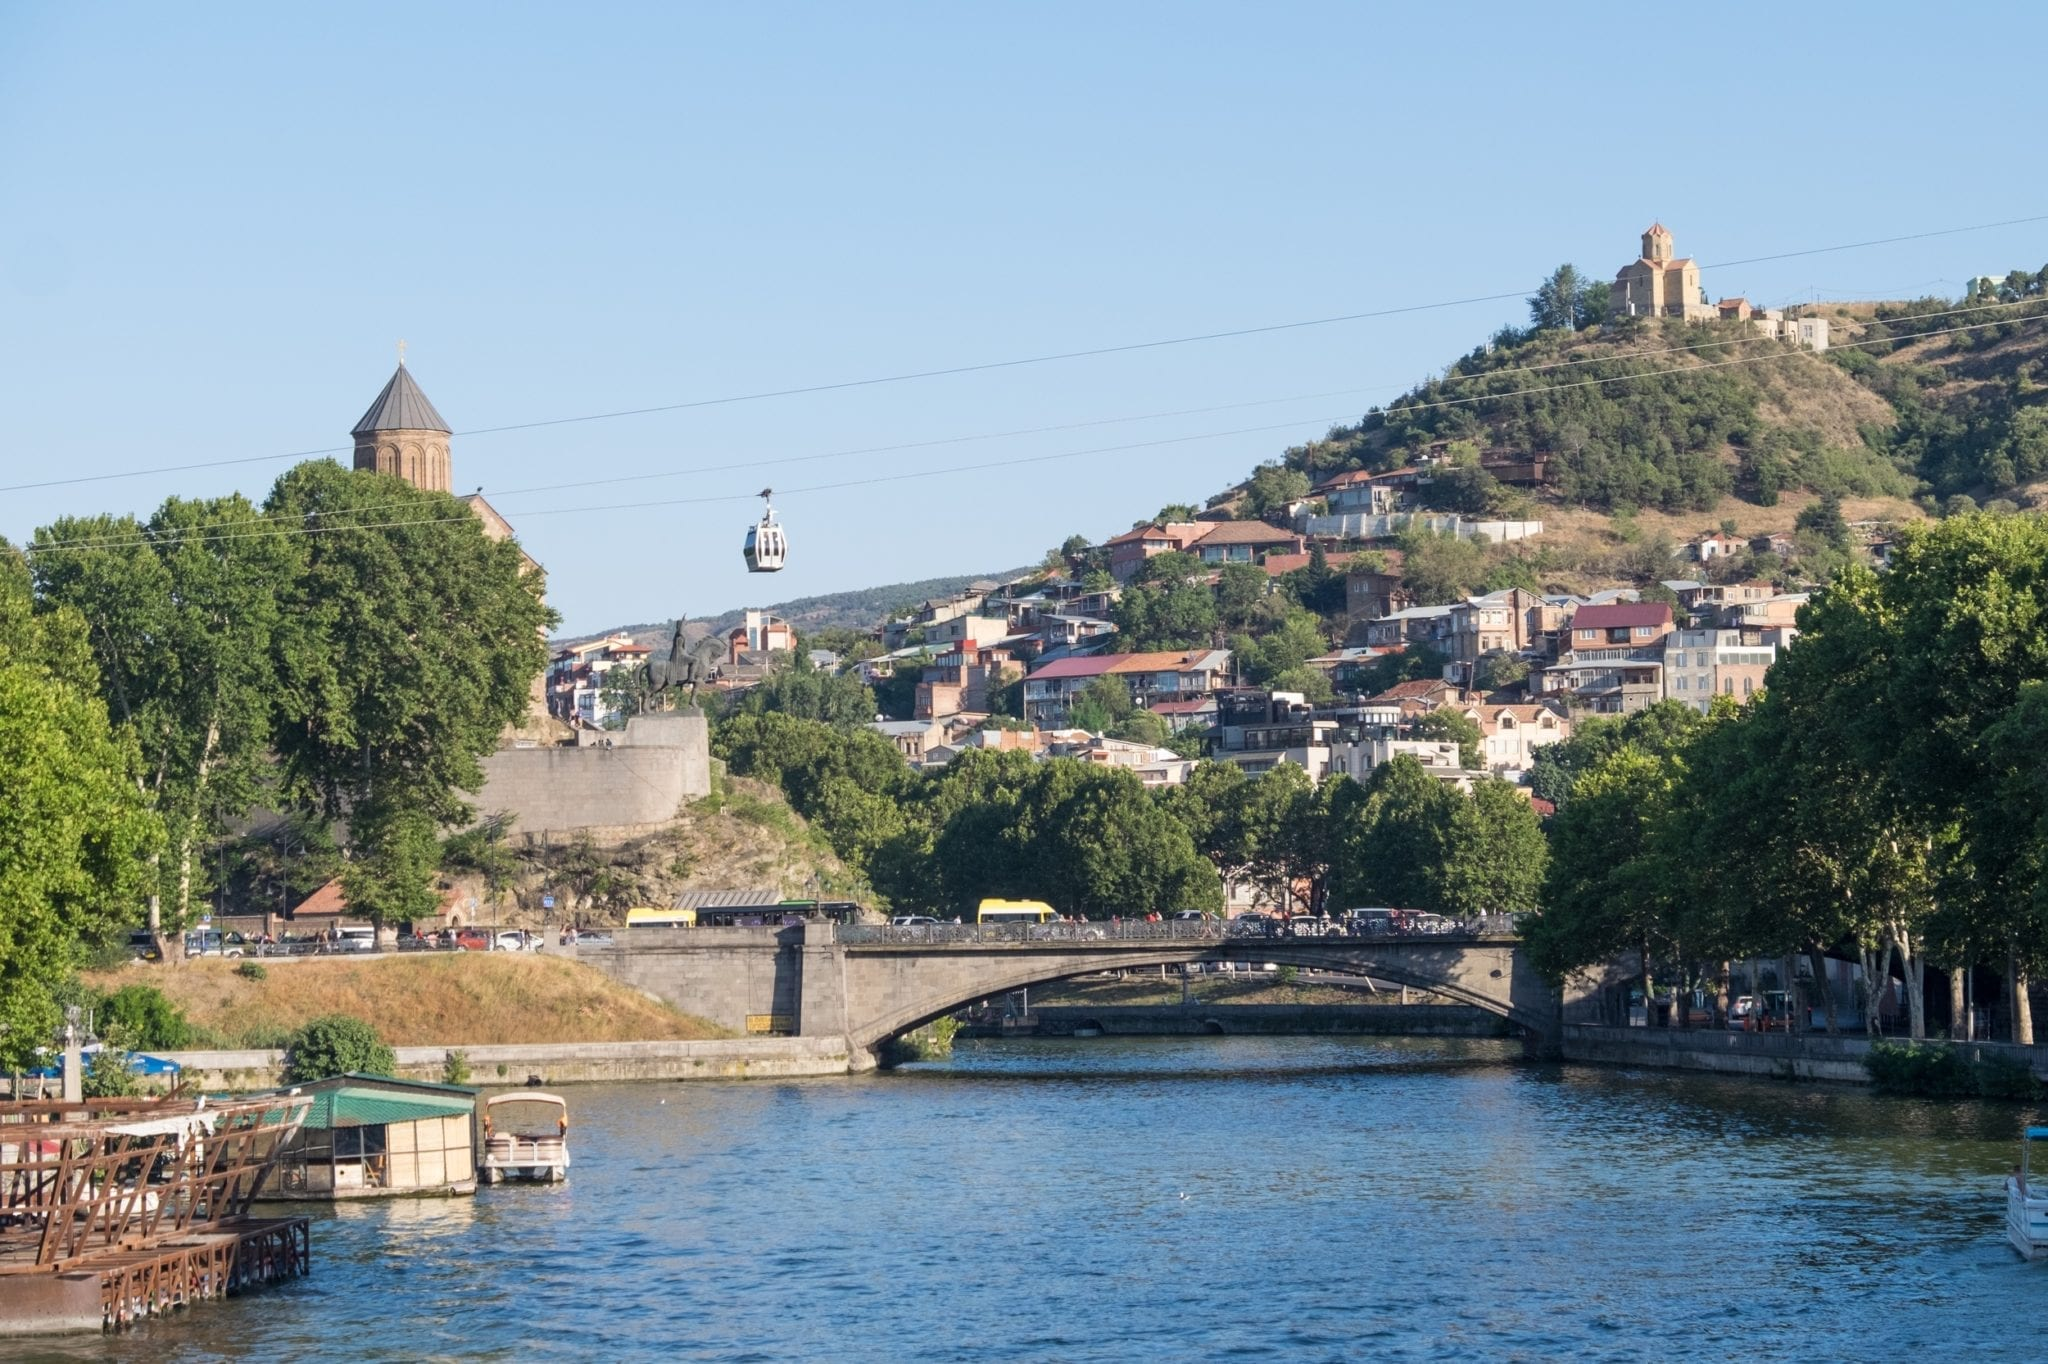 A shot over the river in Tbilisi, bridges crossing it. On the right is a monastery perched on a hill and you see a cable car traveling a wire in the air.